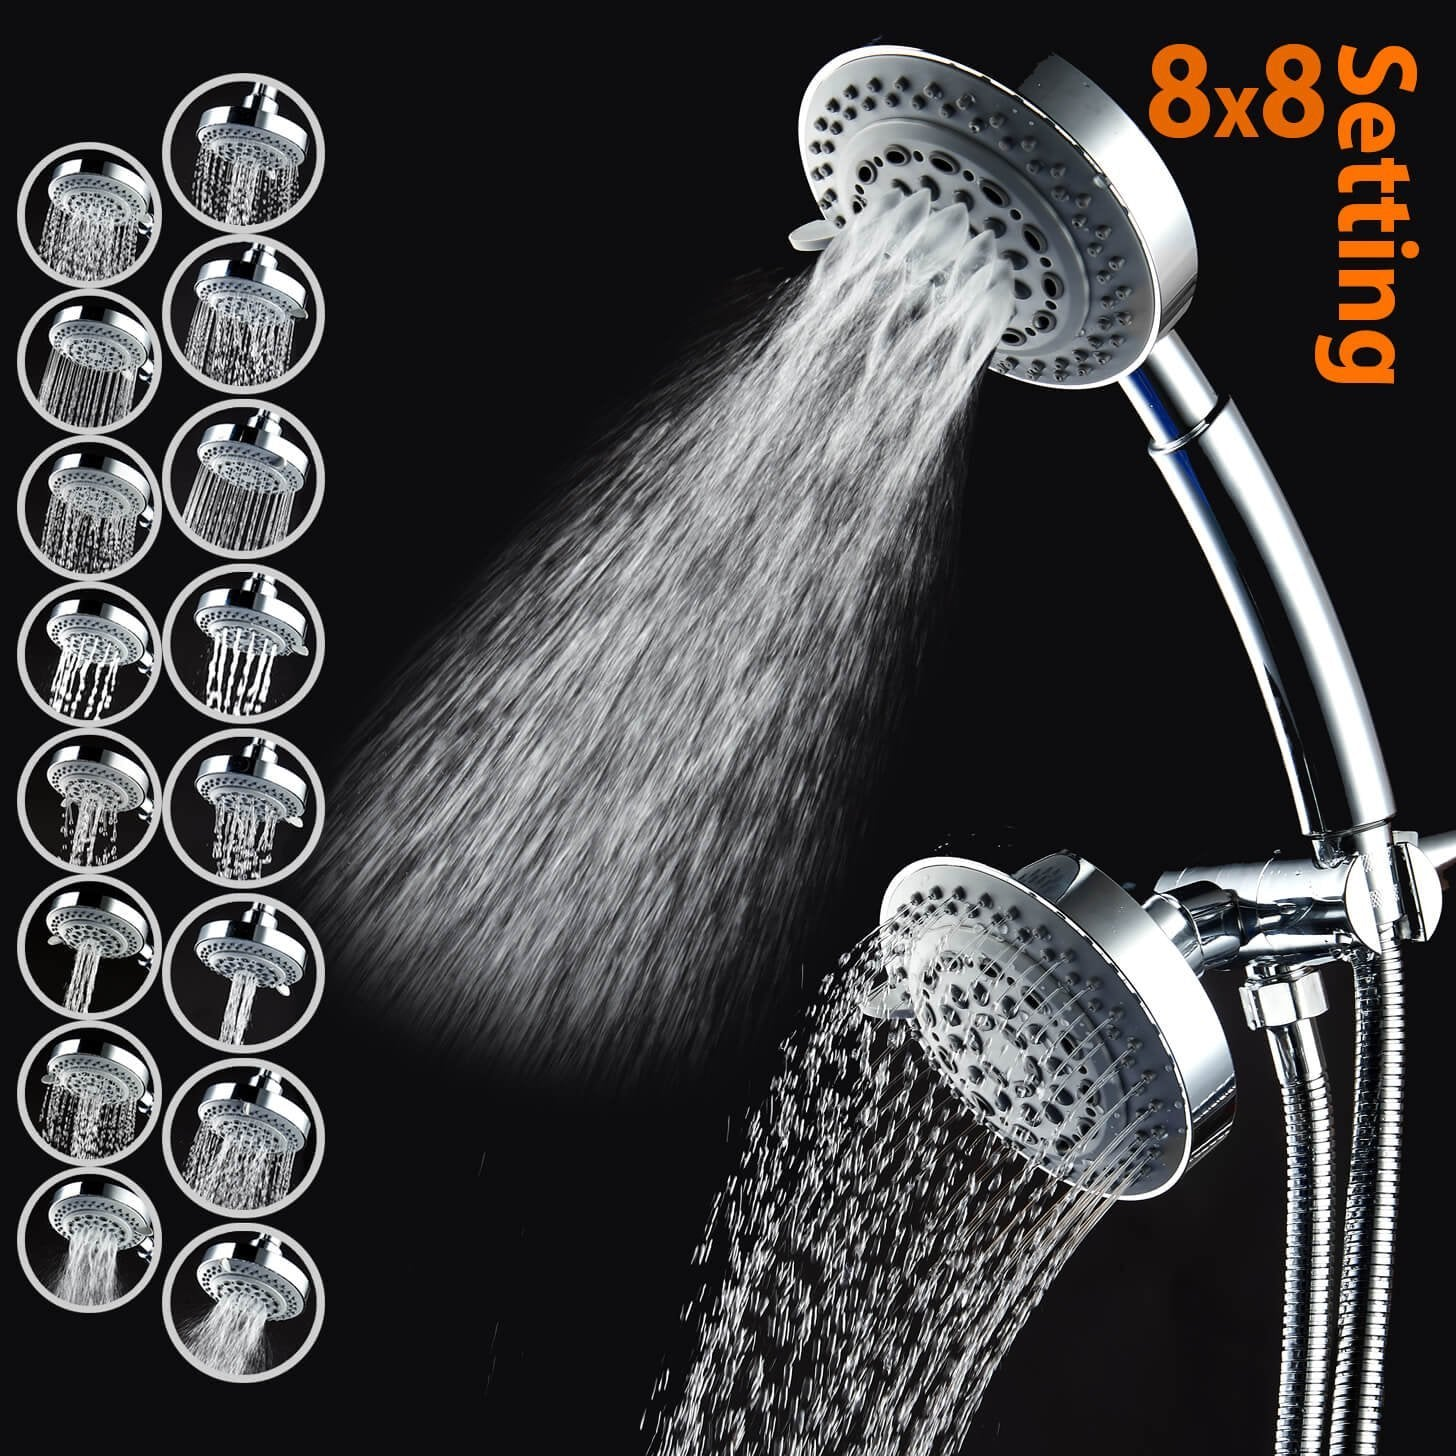 CaptainEco 8 x 8 Function American Standard Combo Shower head 3-way high Pressure